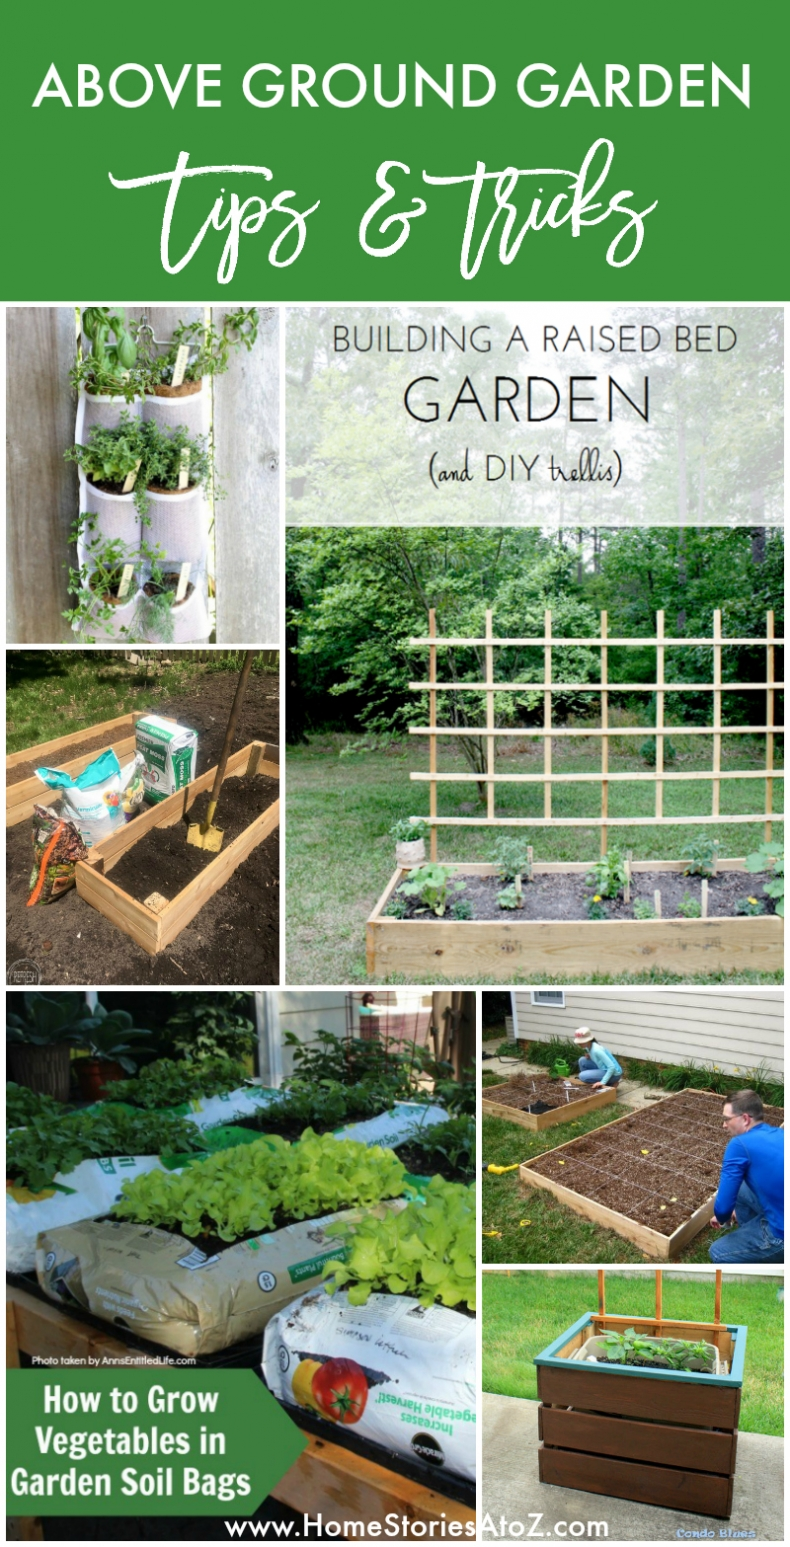 Above Ground Garden Tips & Tricks to Help Your Garden